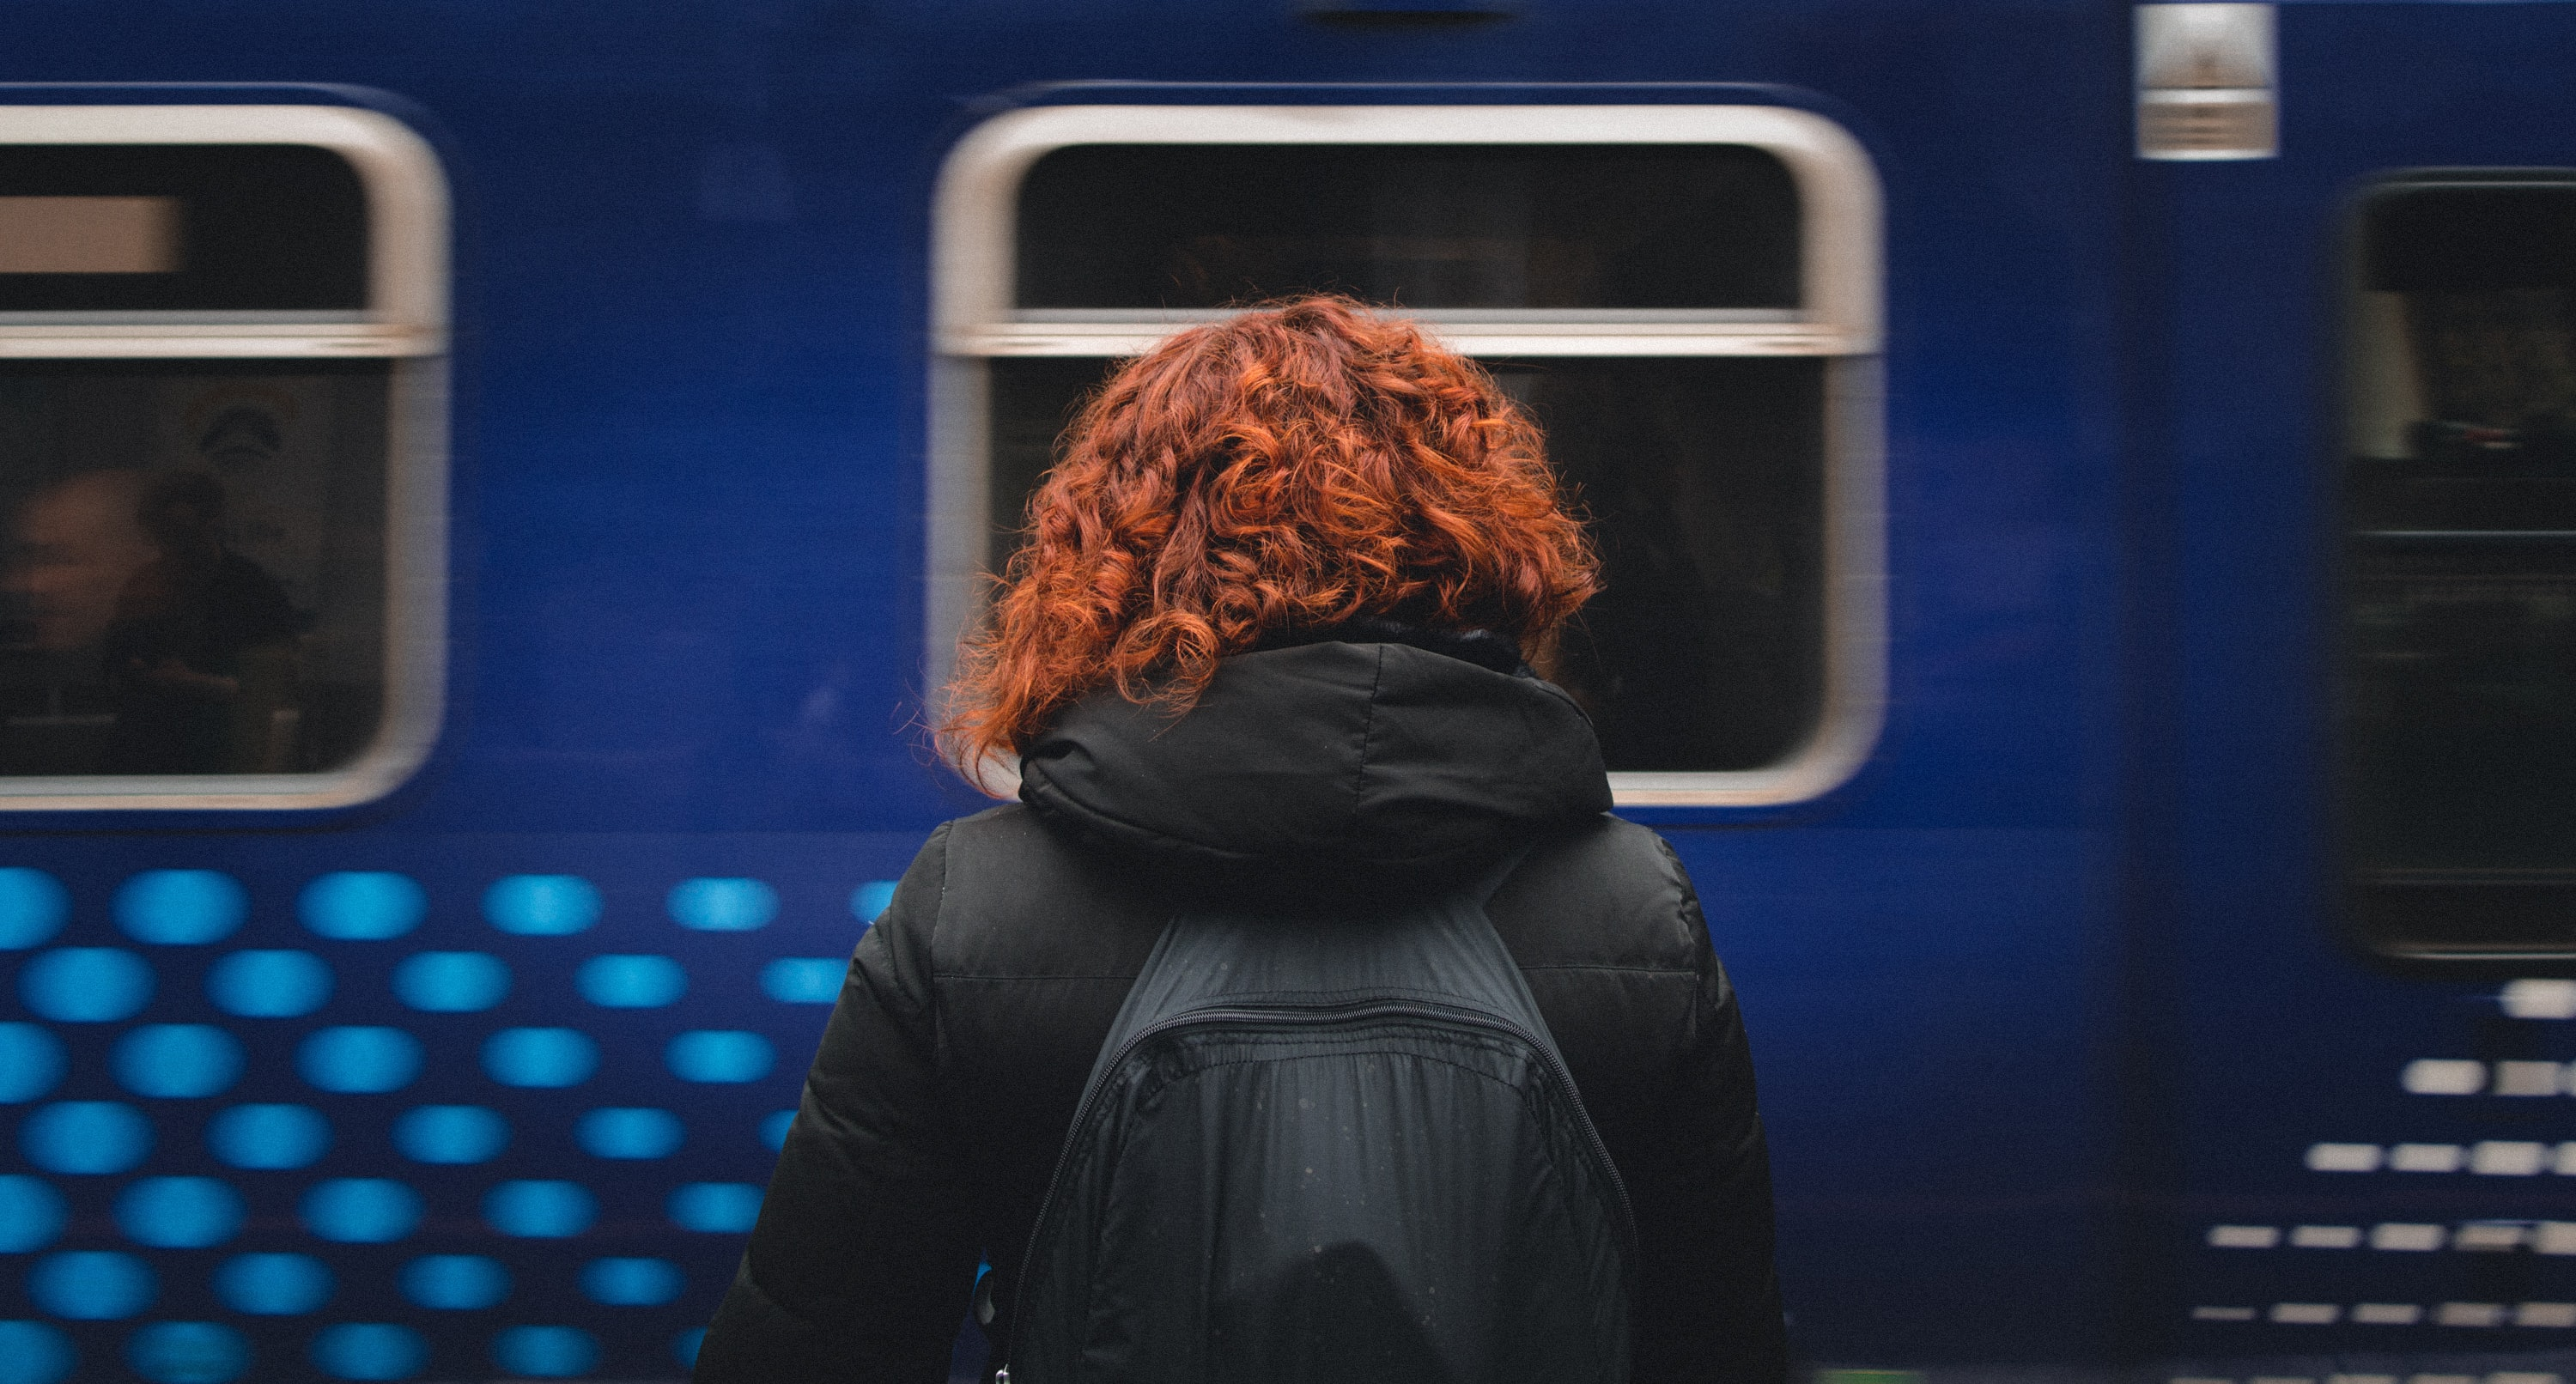 A person with curly red hair faces away toward a moving blue train in Mount Florida